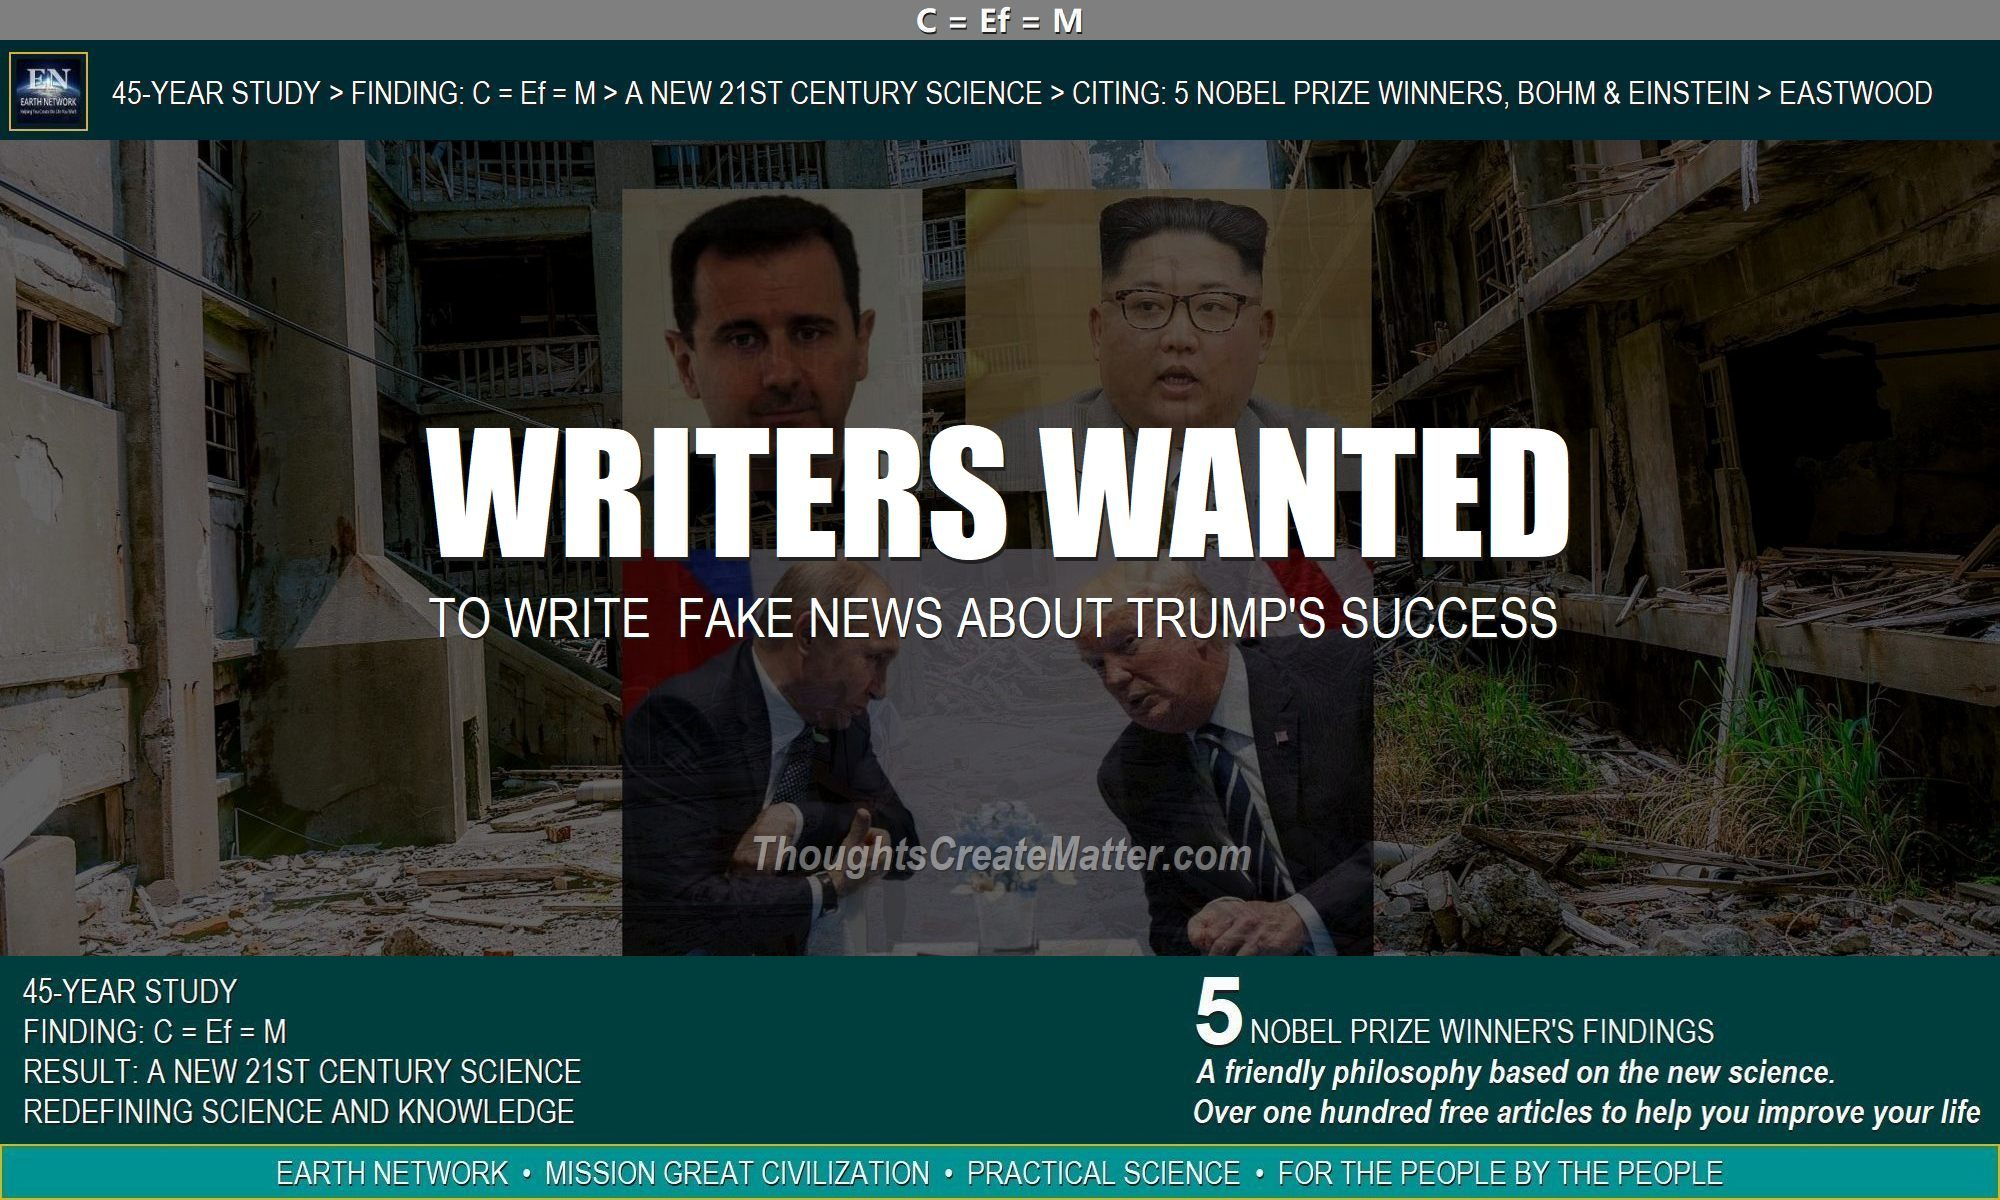 Destruction in Syria depicts Trumps failure and foolish attempt to hire writers for false news lies